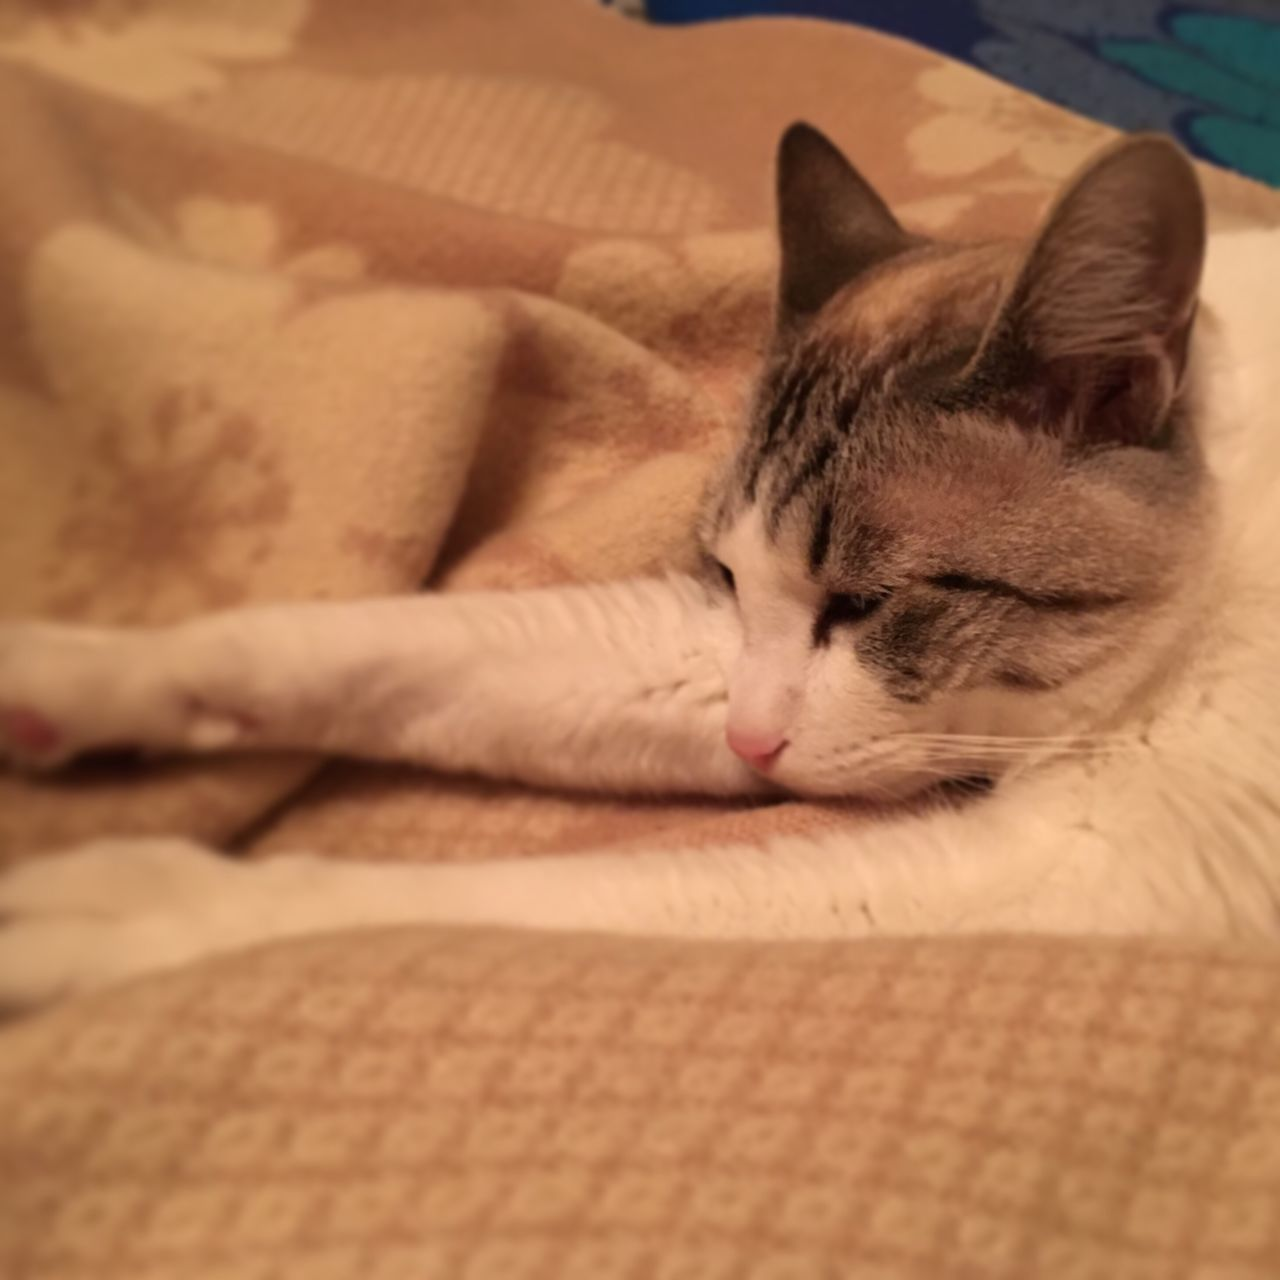 domestic cat, pets, domestic animals, feline, mammal, cat, one animal, animal themes, sleeping, eyes closed, indoors, relaxation, no people, close-up, day